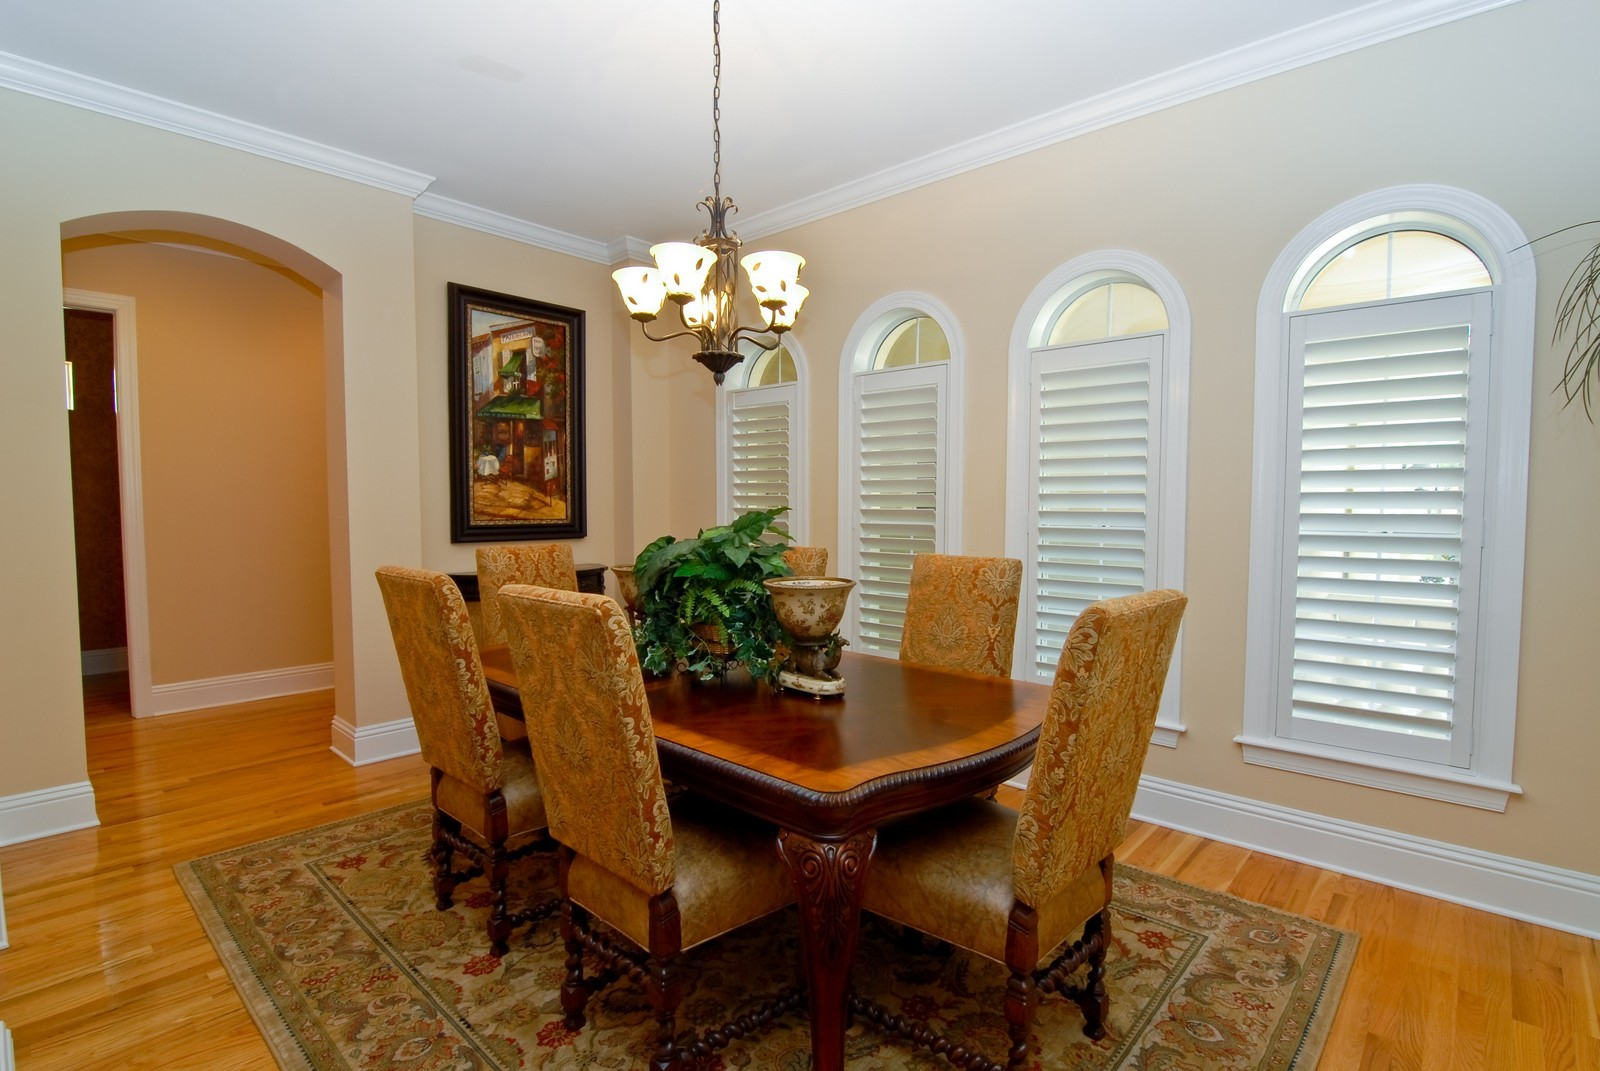 Real Estate Photography - 3107 Fountain Blvd, Tampa, FL, 33609 - Dining Room